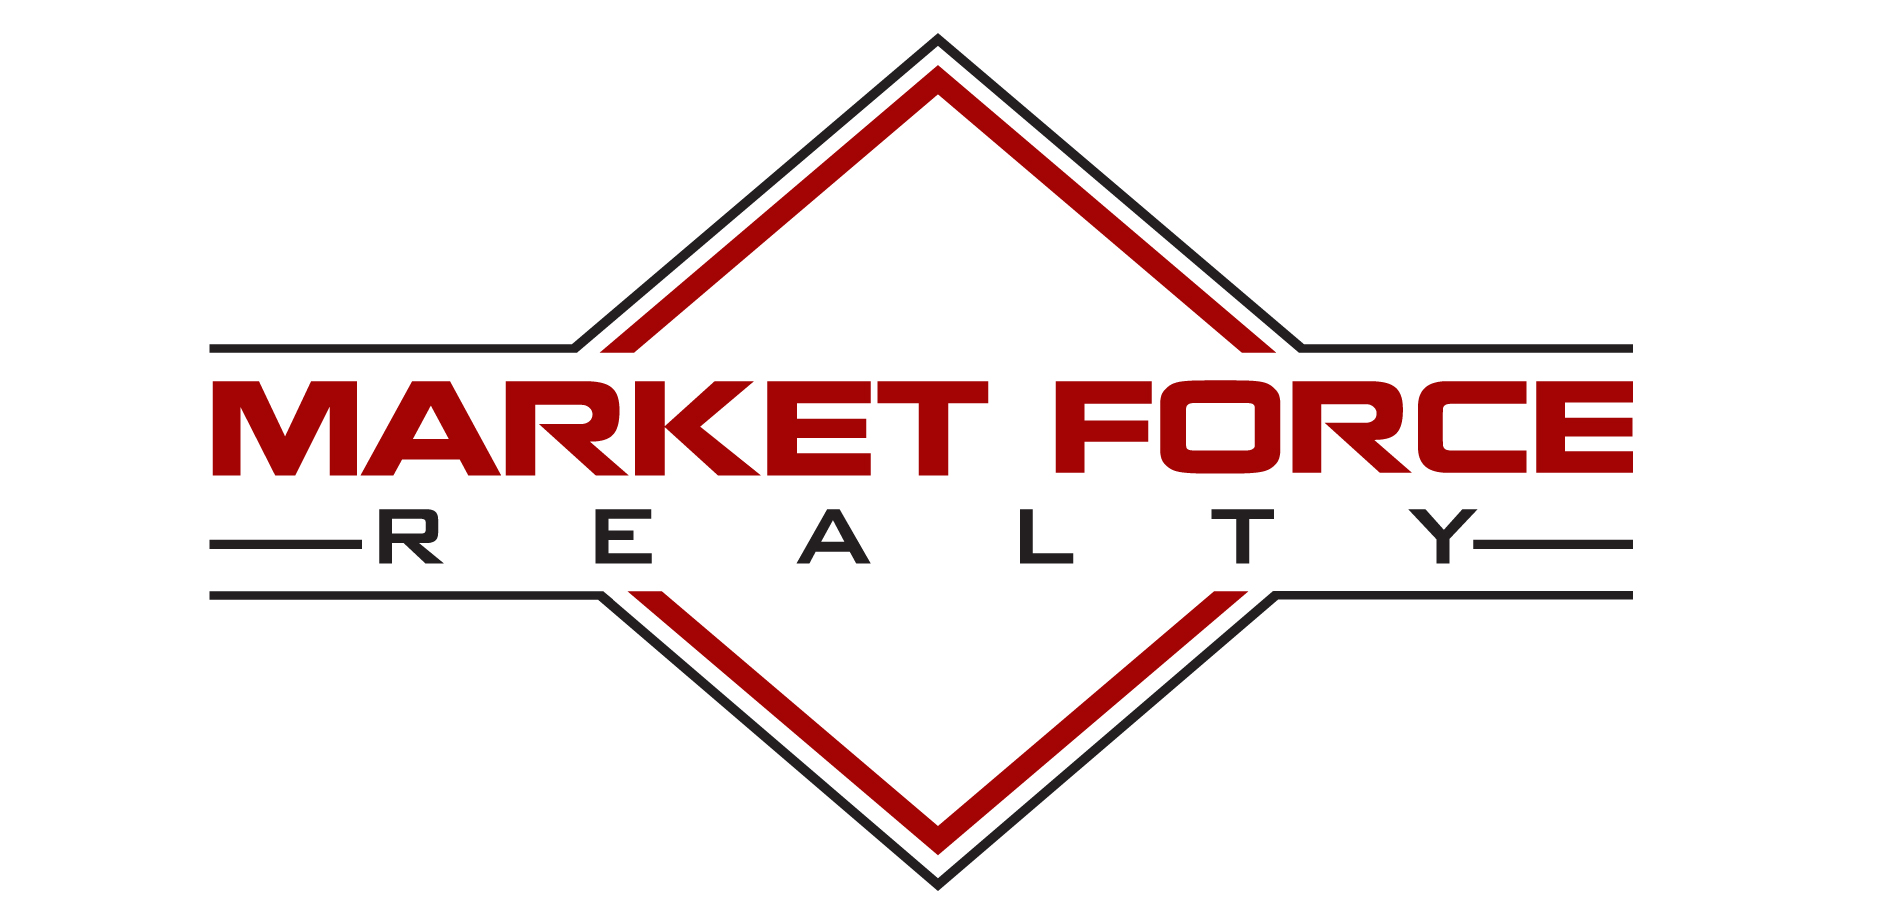 Market Force Realty